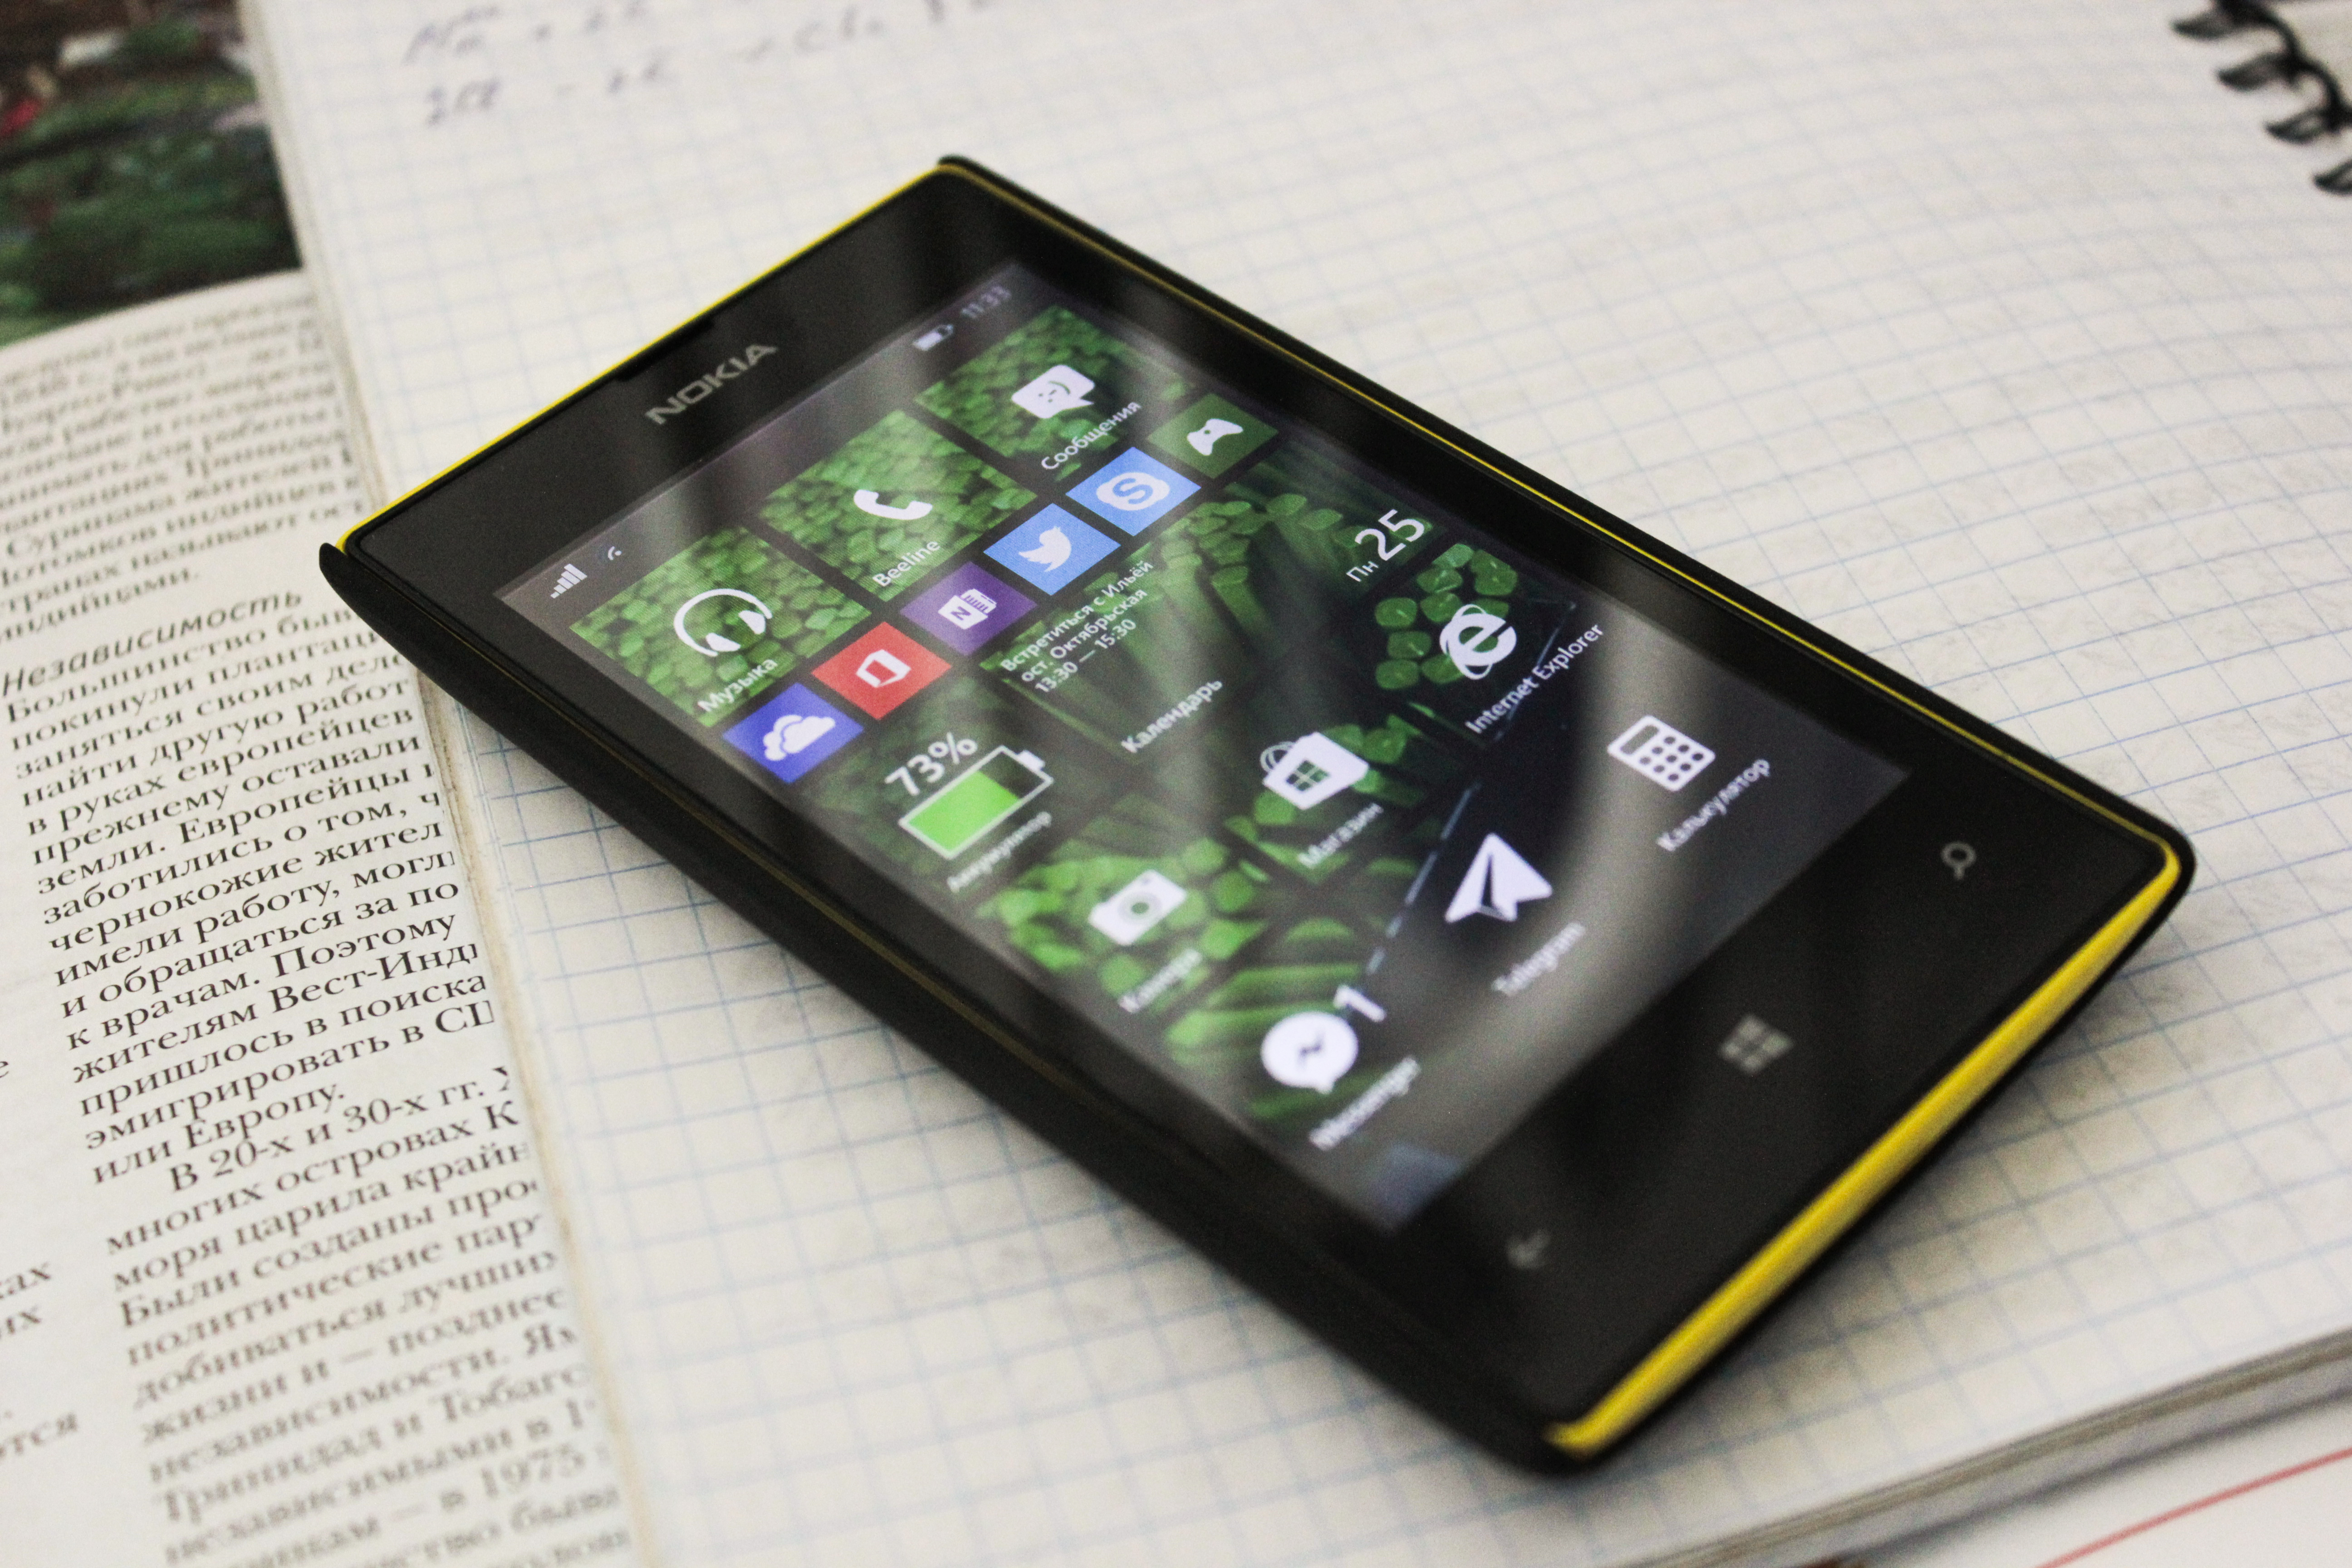 Nokia xl price nigeria - Microsoft Is Said To Be Ready To Stop Production Of Some Windows Phone And Sadly Lumia Brand Seems To Be On Top Of The List This Has Been Confirmed By